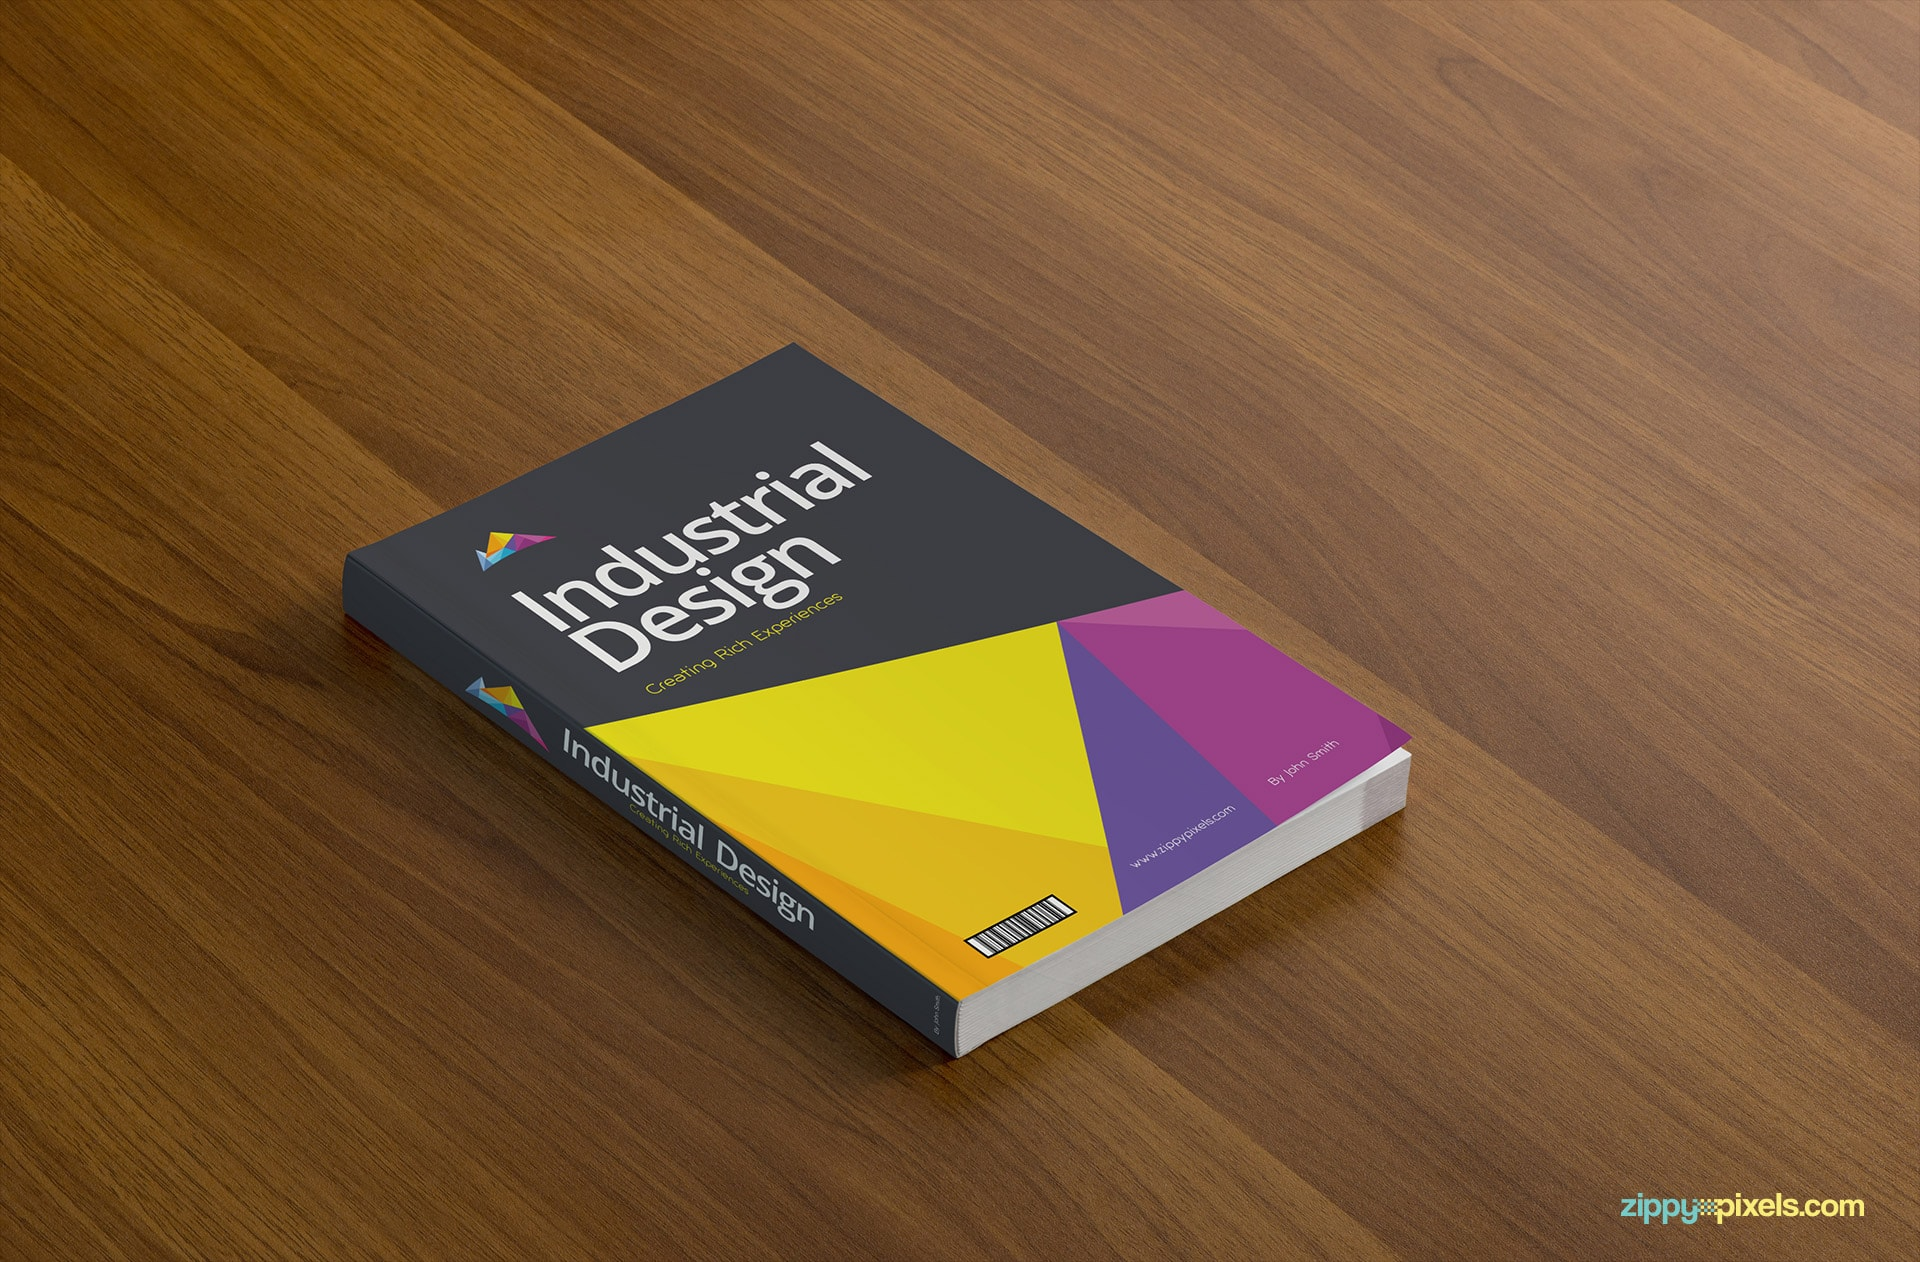 Book Cover Mockup on Table